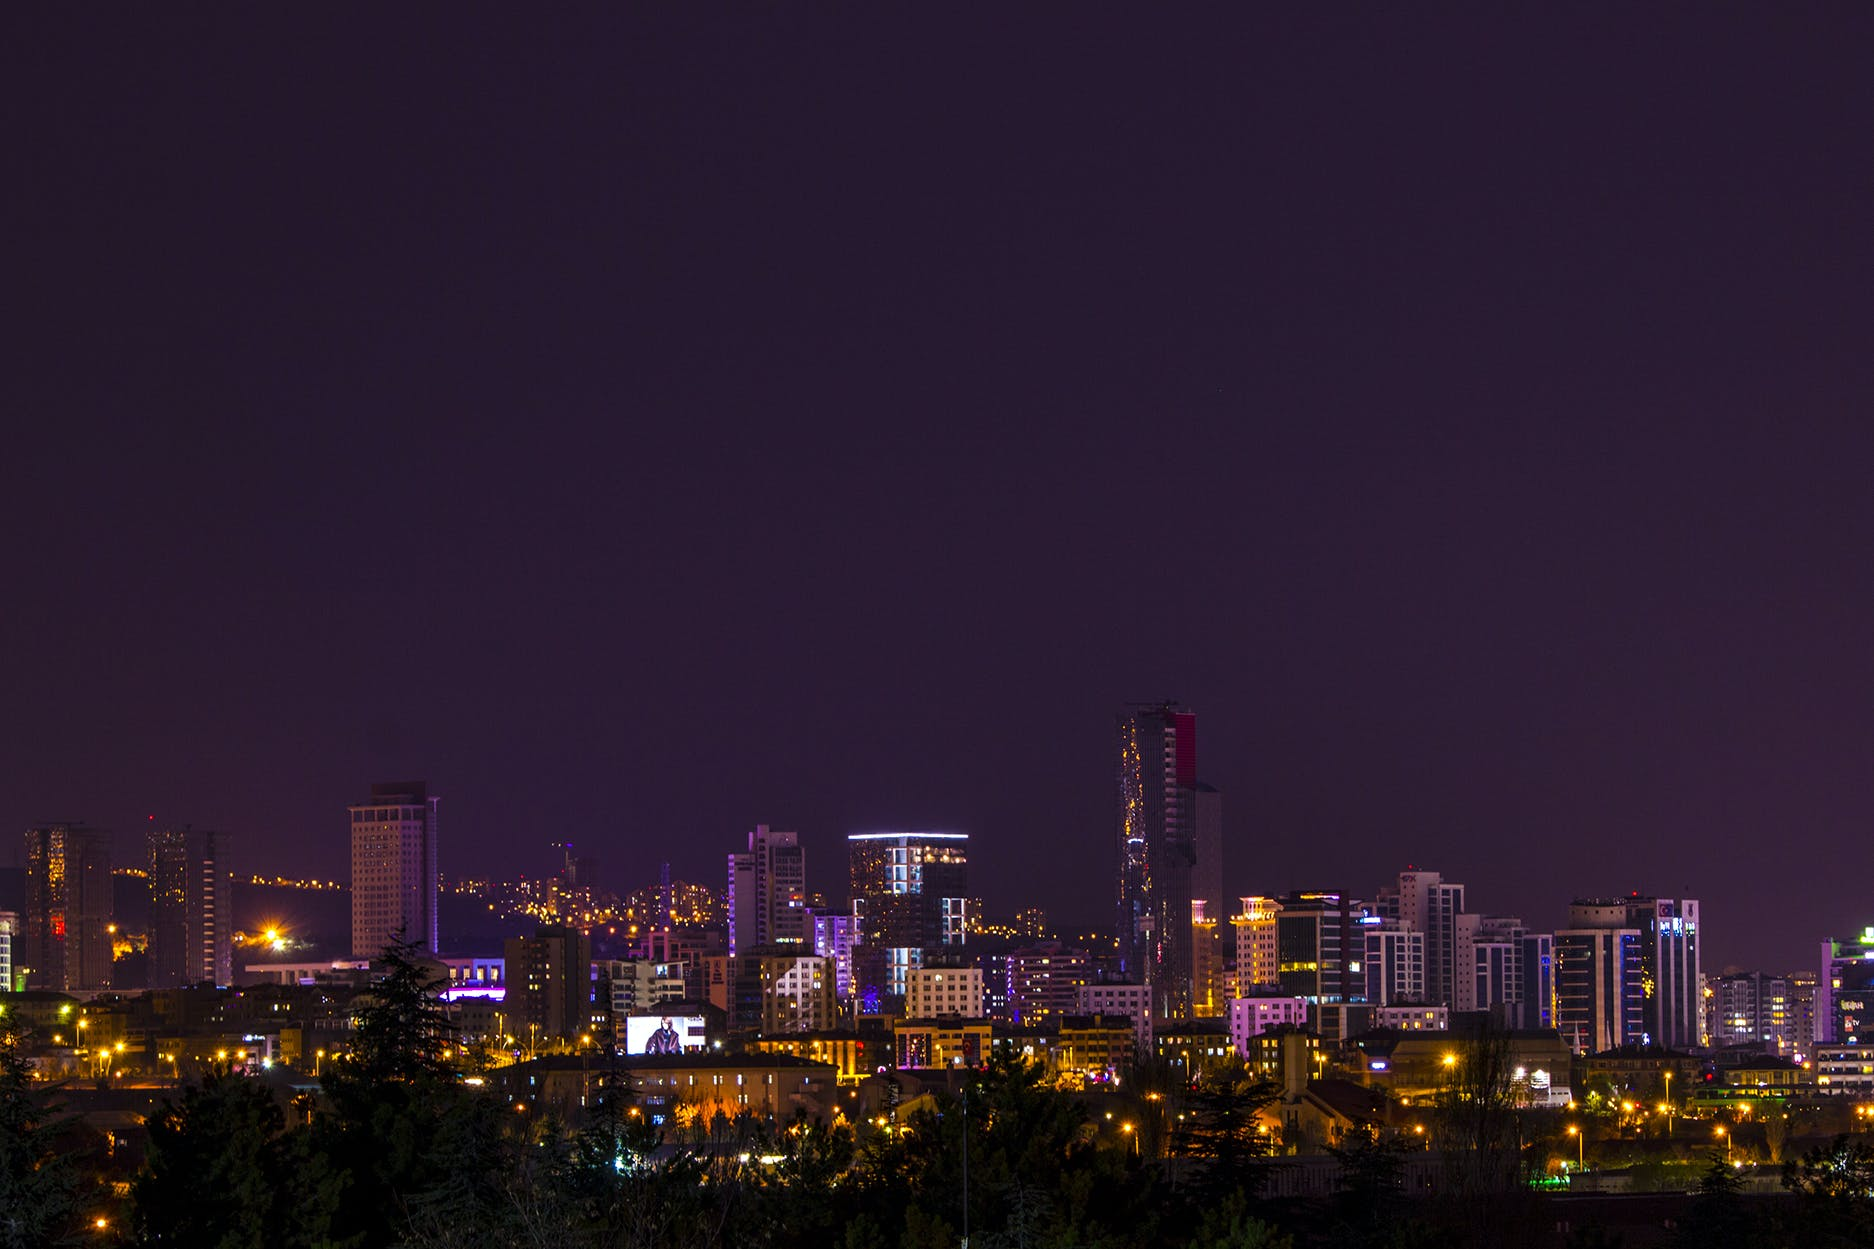 Skyline View during Night Time